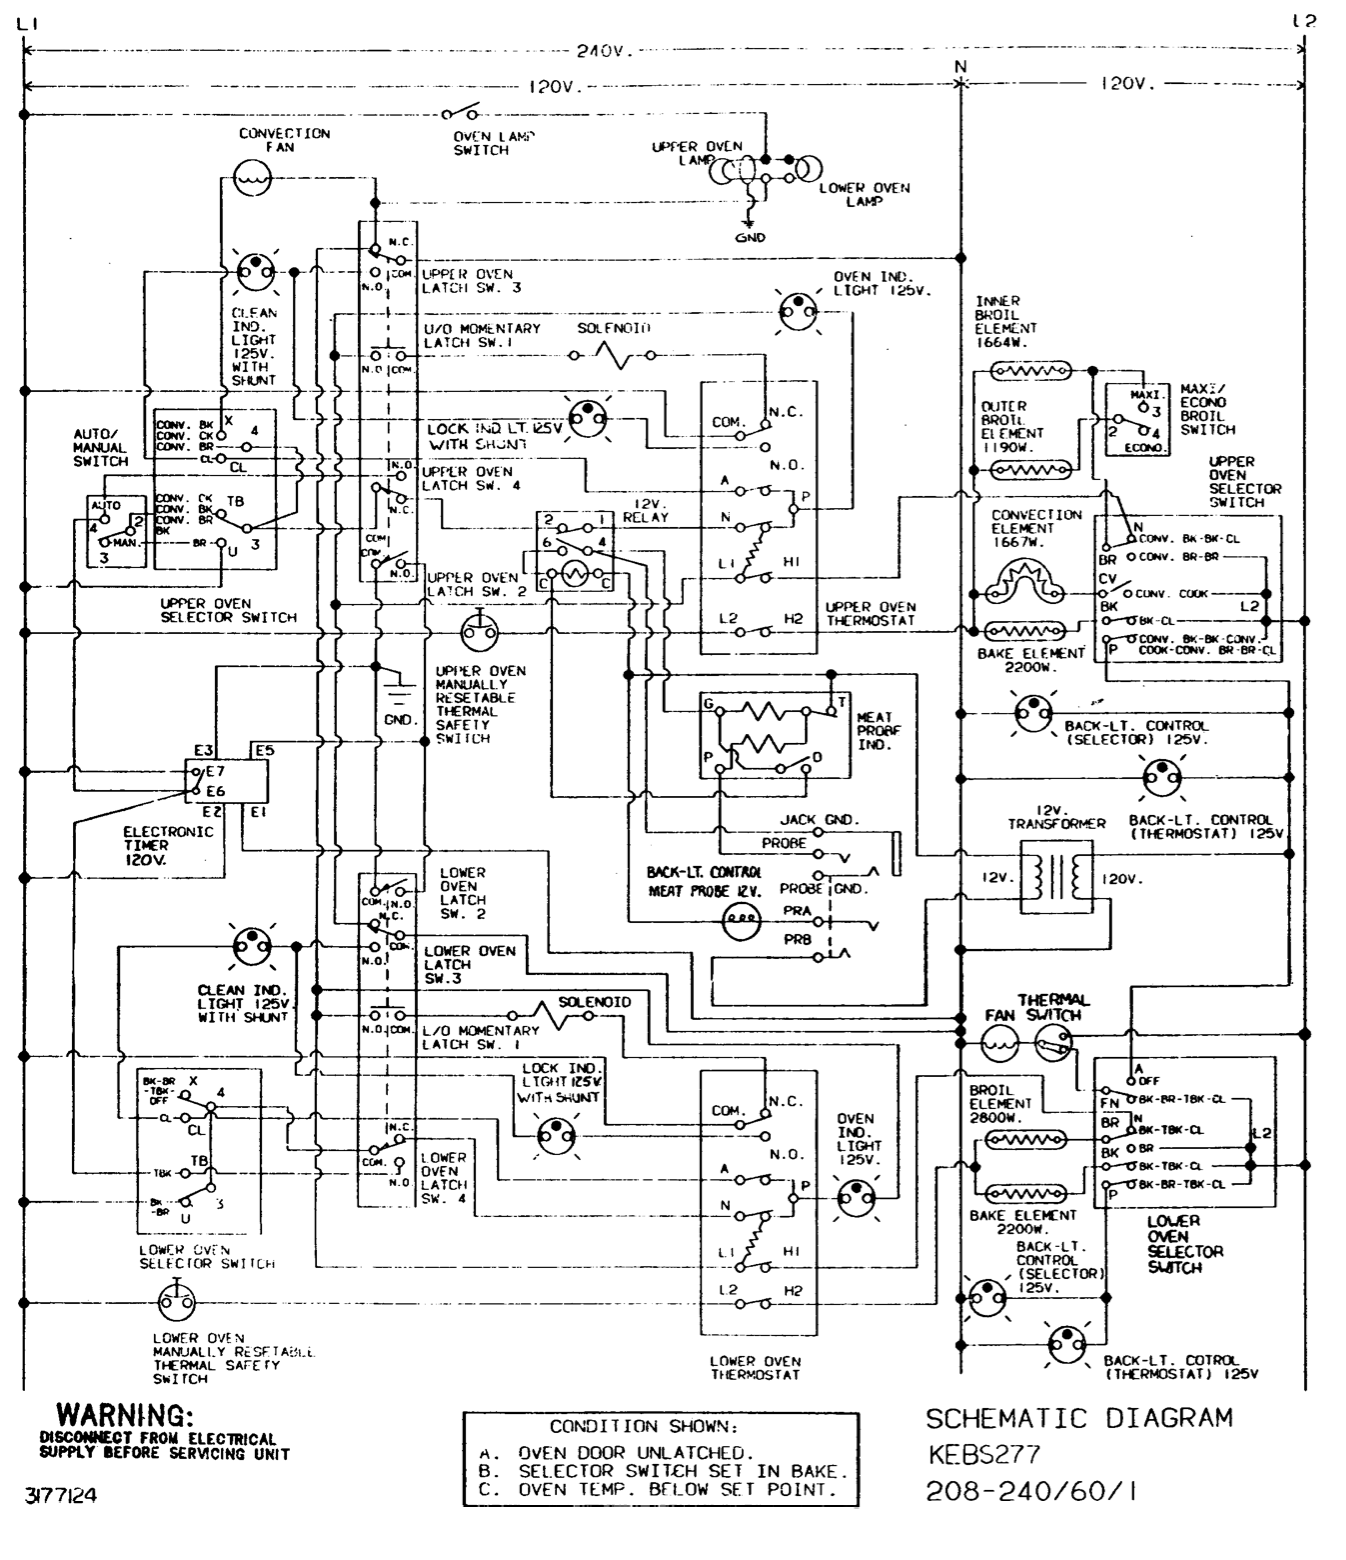 b2f9 ge dishwasher wiring diagrams electrical problems | wiring library  wiring library